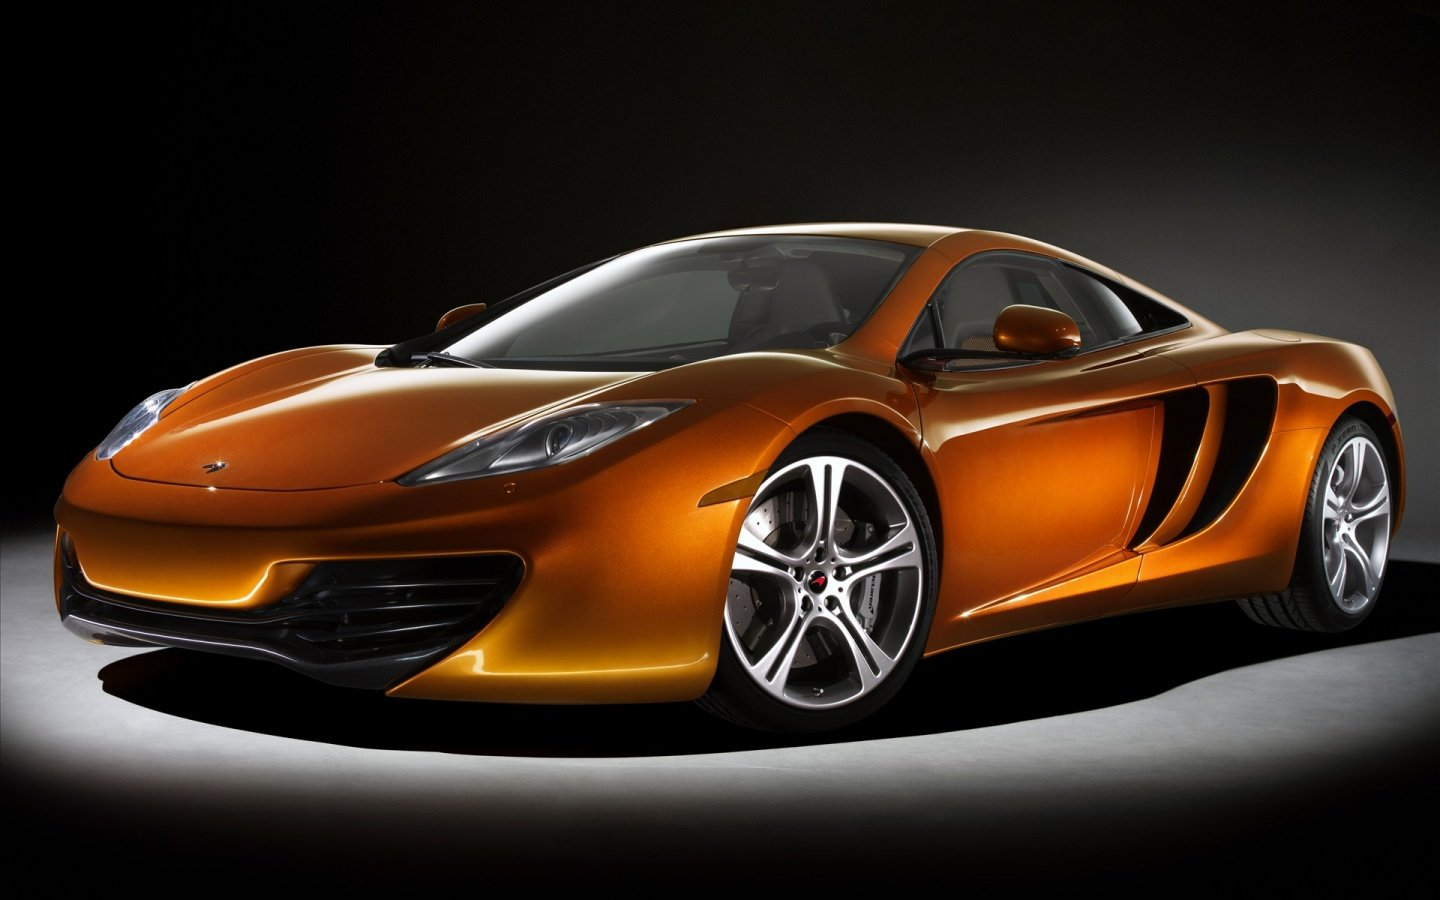 Latest Mclaren Mp4 12C Gt3 Sport Car Review 2011 And Pictures Free Download